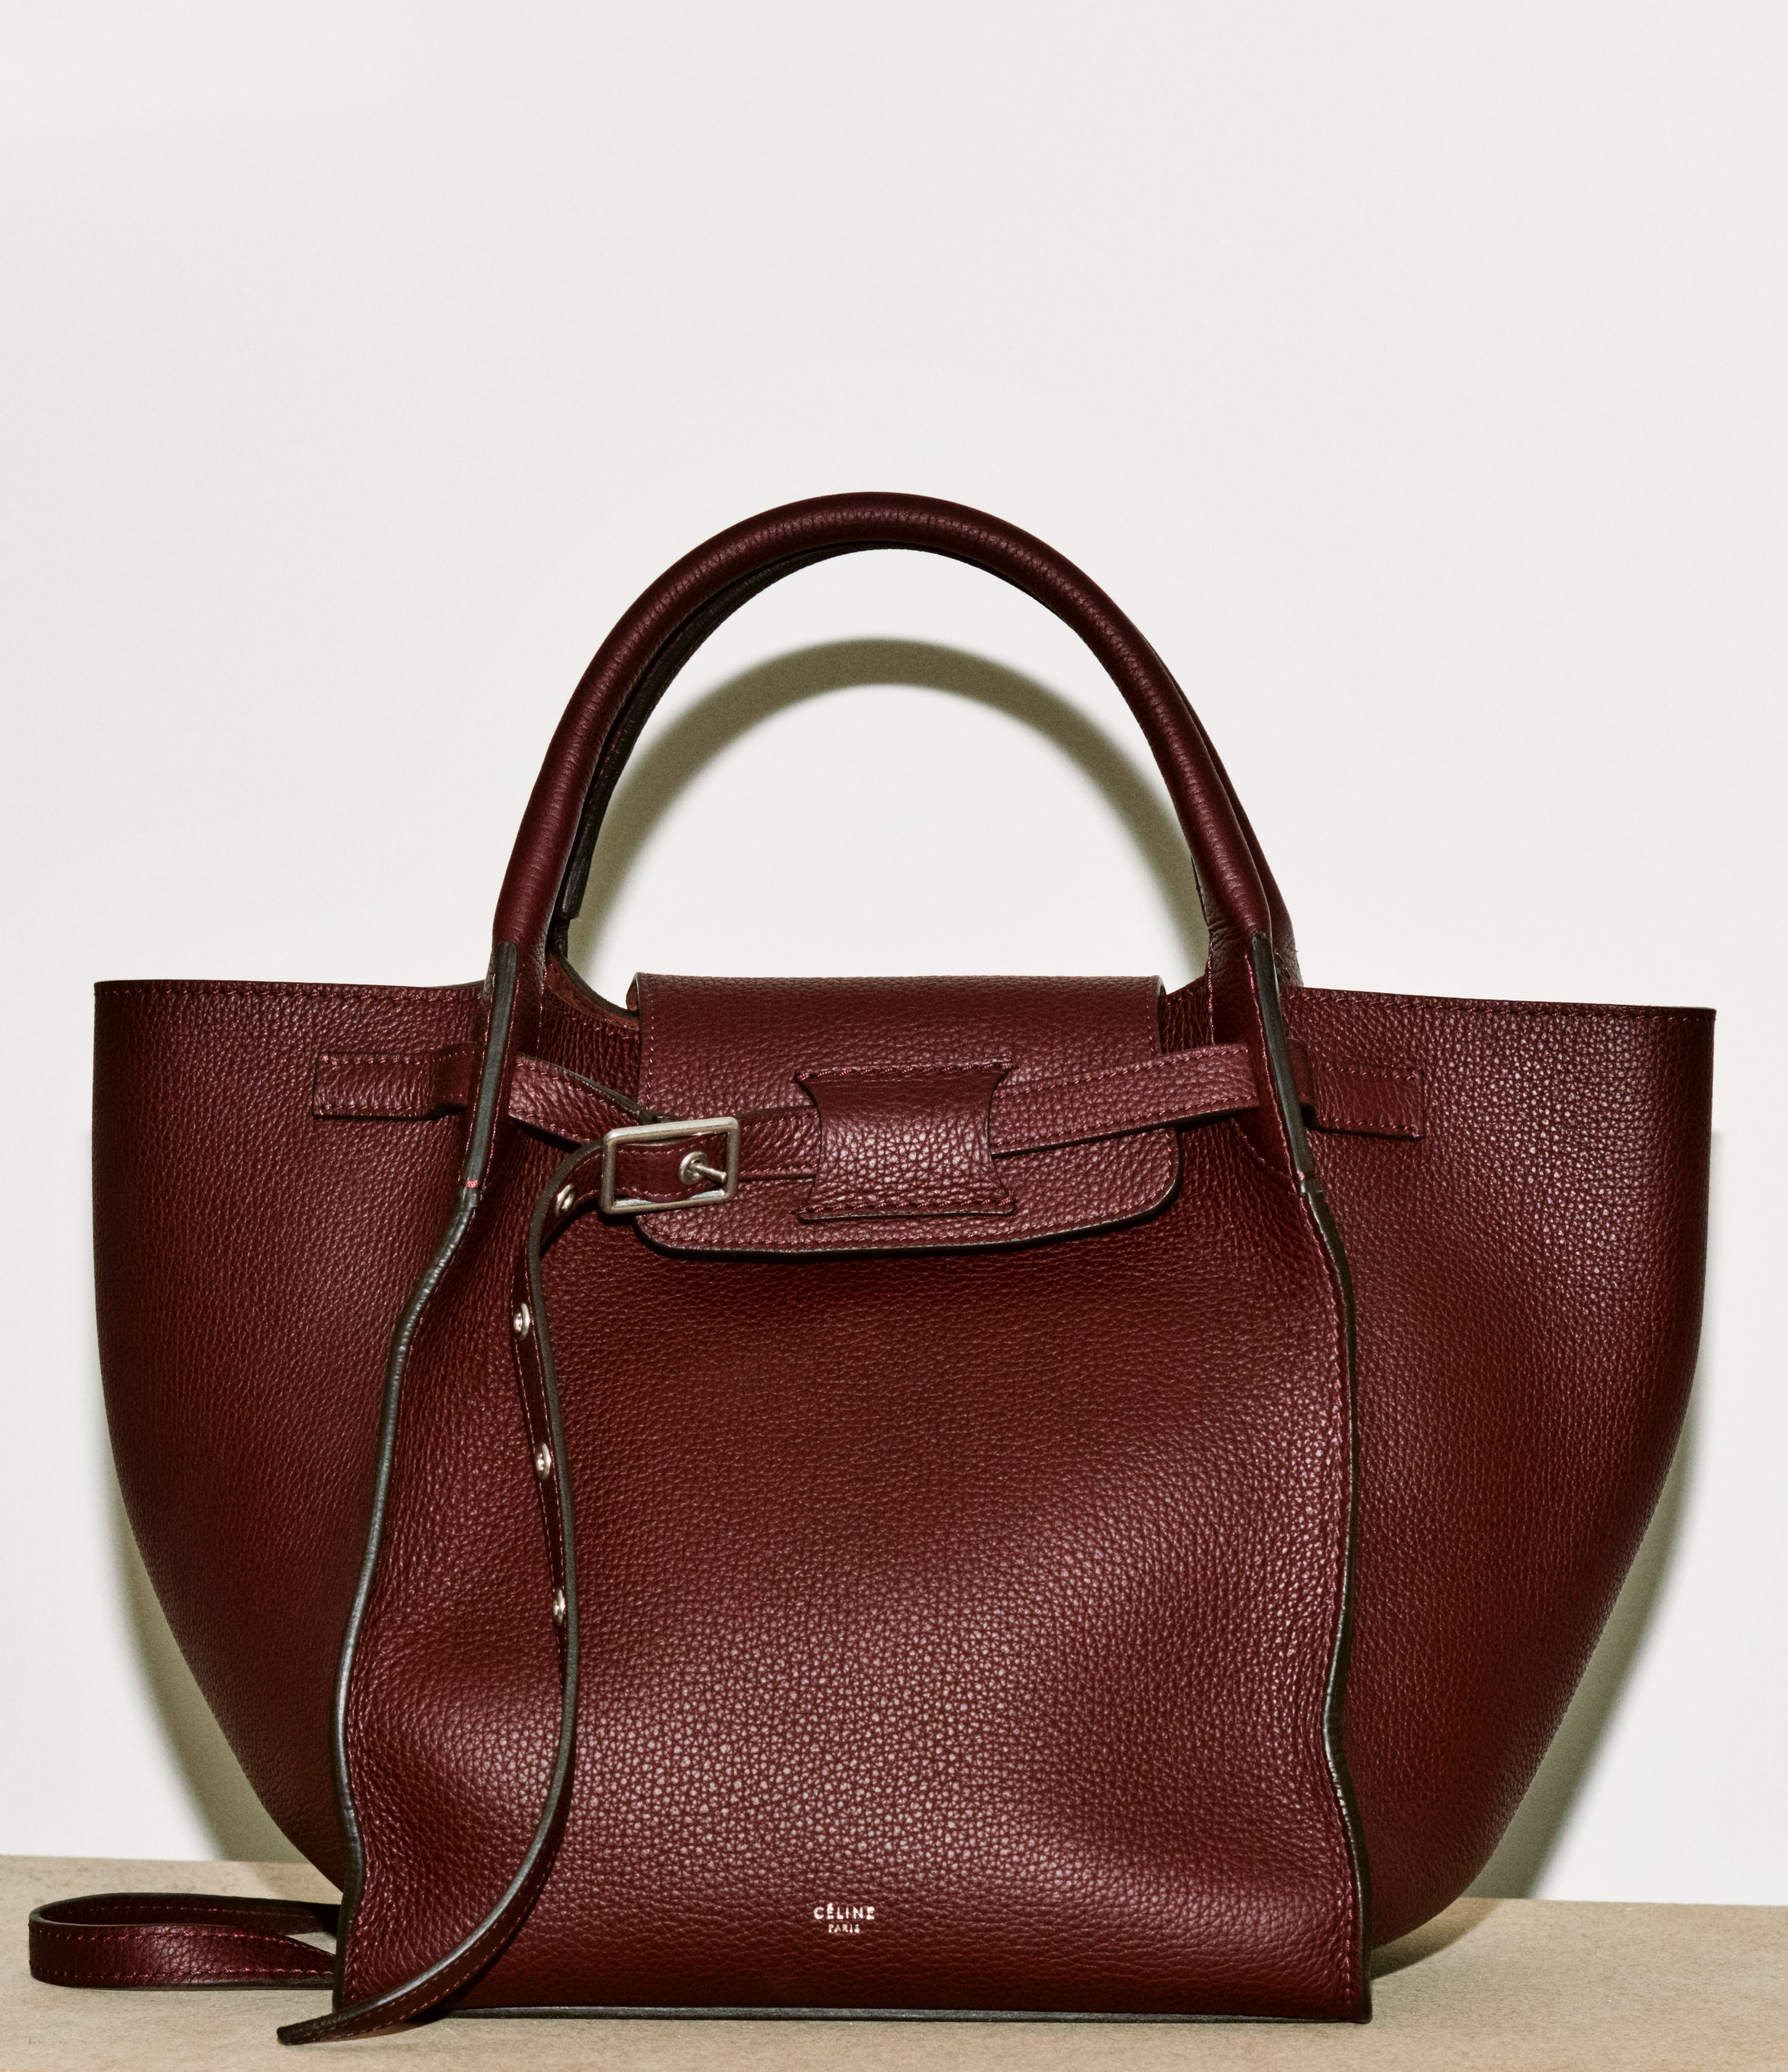 A Céline handbag part of the 5-piece capsule collection